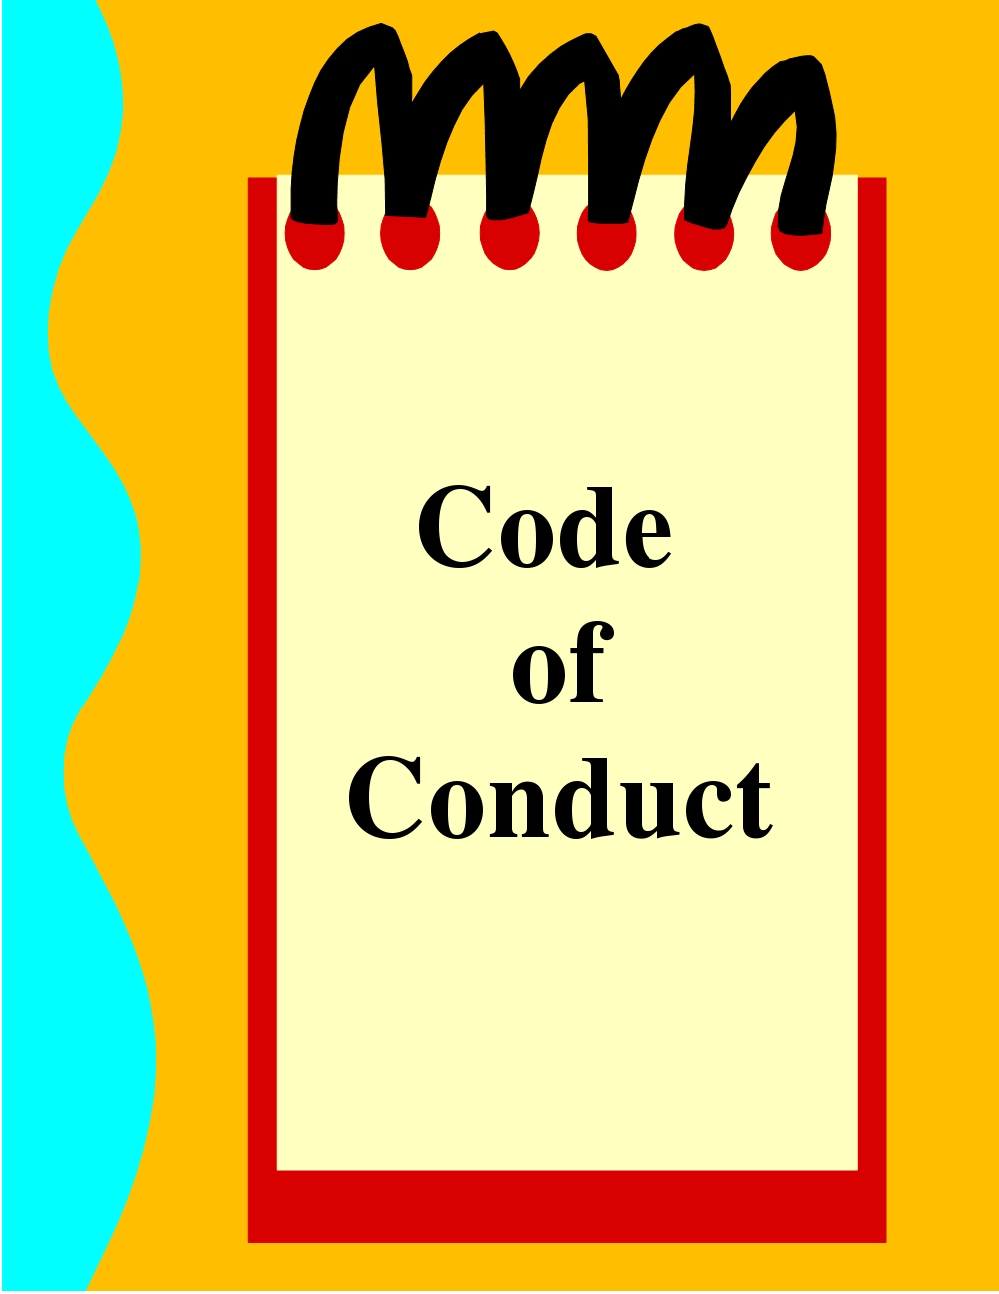 handbook of the code of ethics A code of ethics and professional conduct outlines the ethical principles that govern decisions and behavior at a company or organization they give general outlines of how employees should behave, as well as specific guidance for handling issues like harassment, safety, and conflicts of interest.